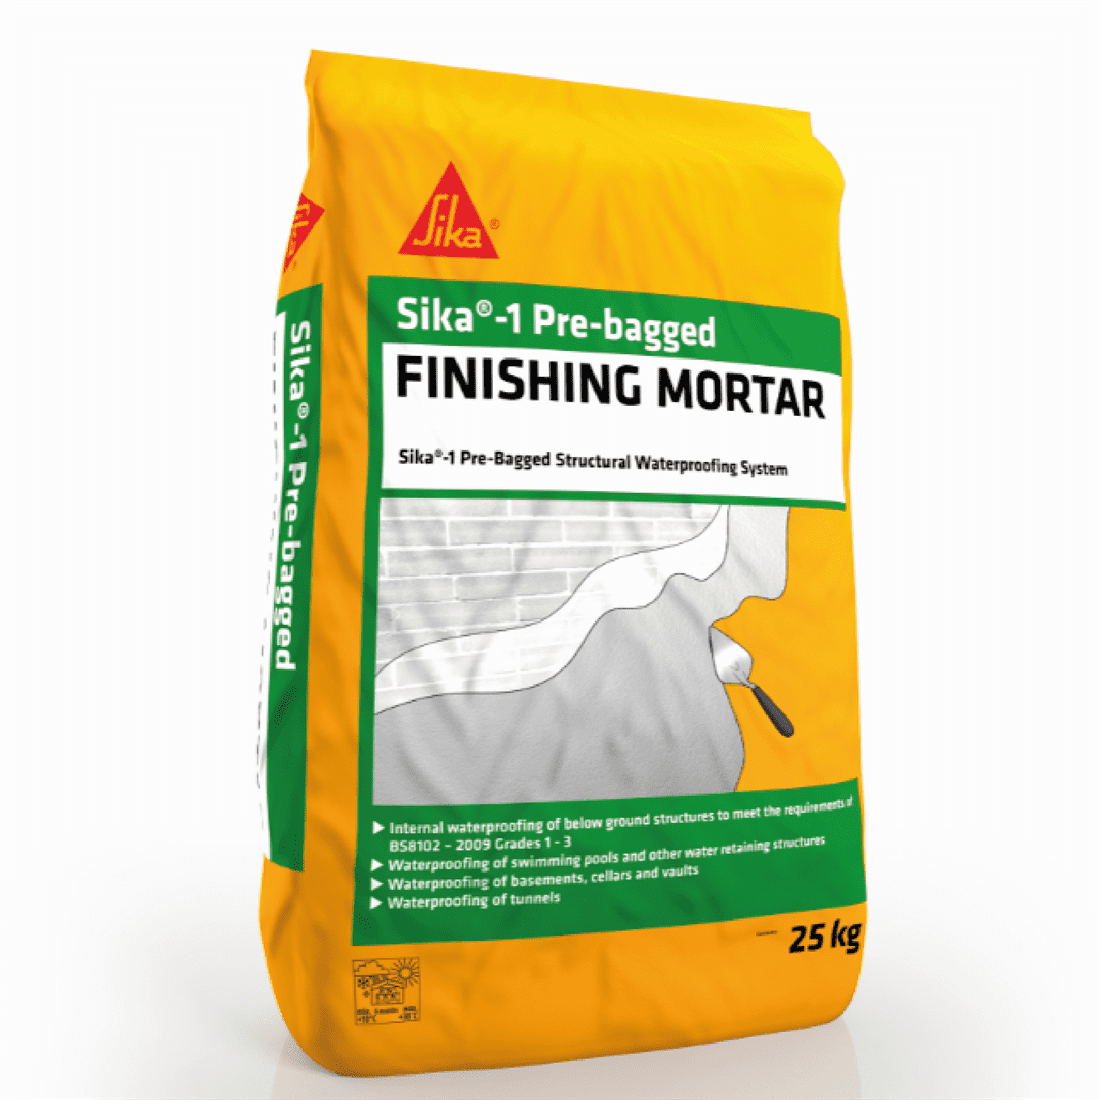 Sika-1 Pre-Bagged Finishing Mortar